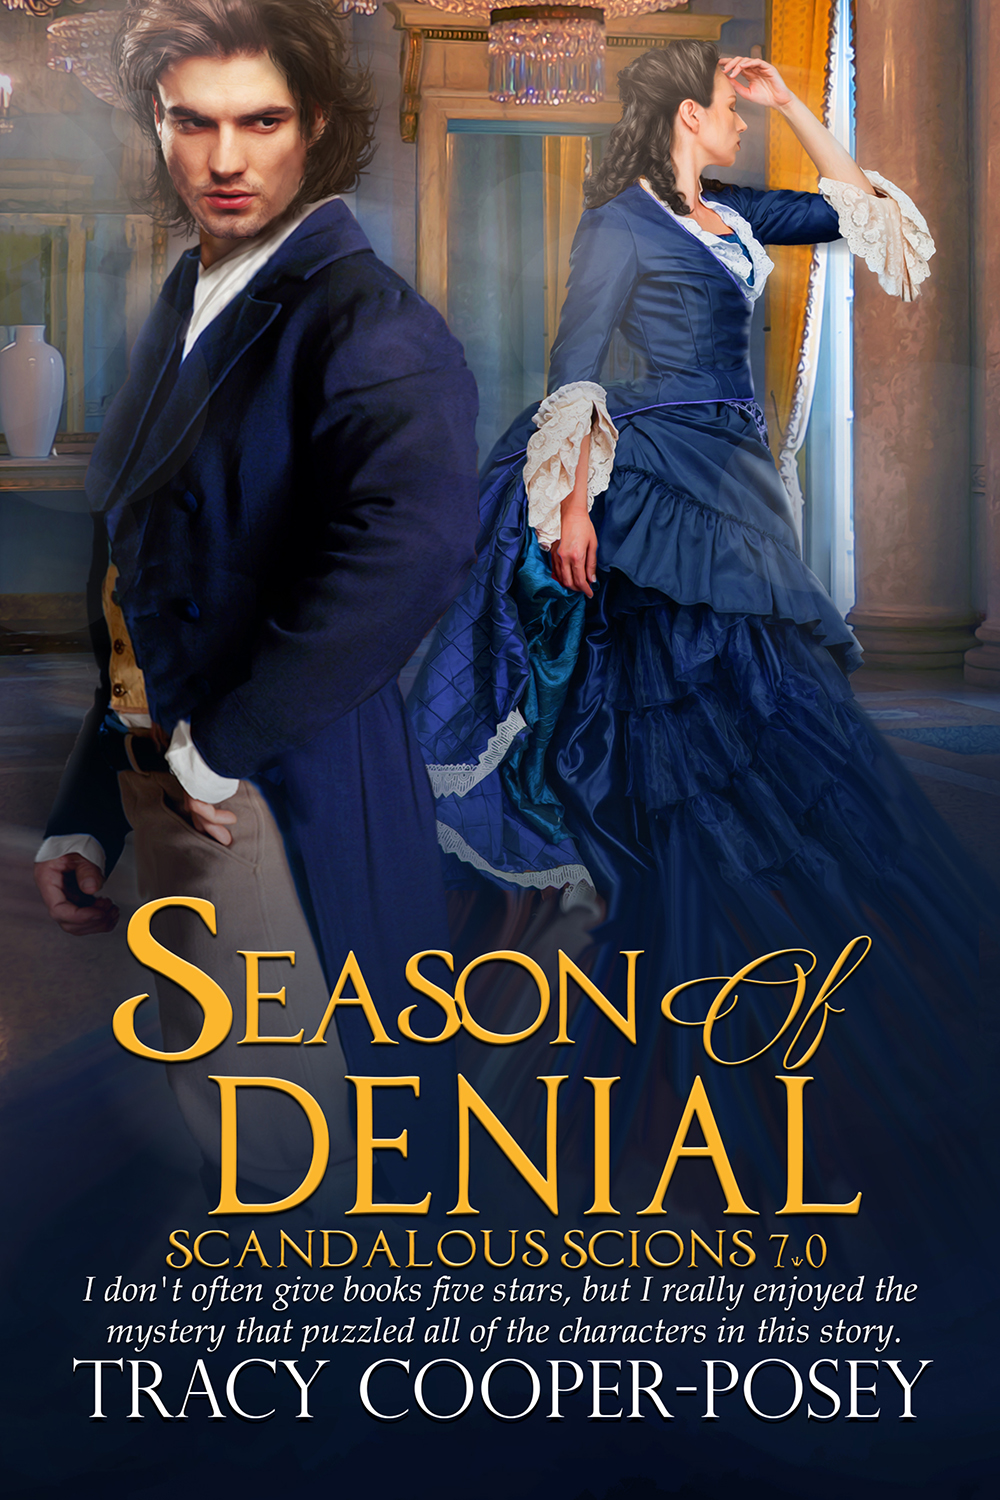 The latest in the Scandalous Scions historical romance series is now available for pre-order.